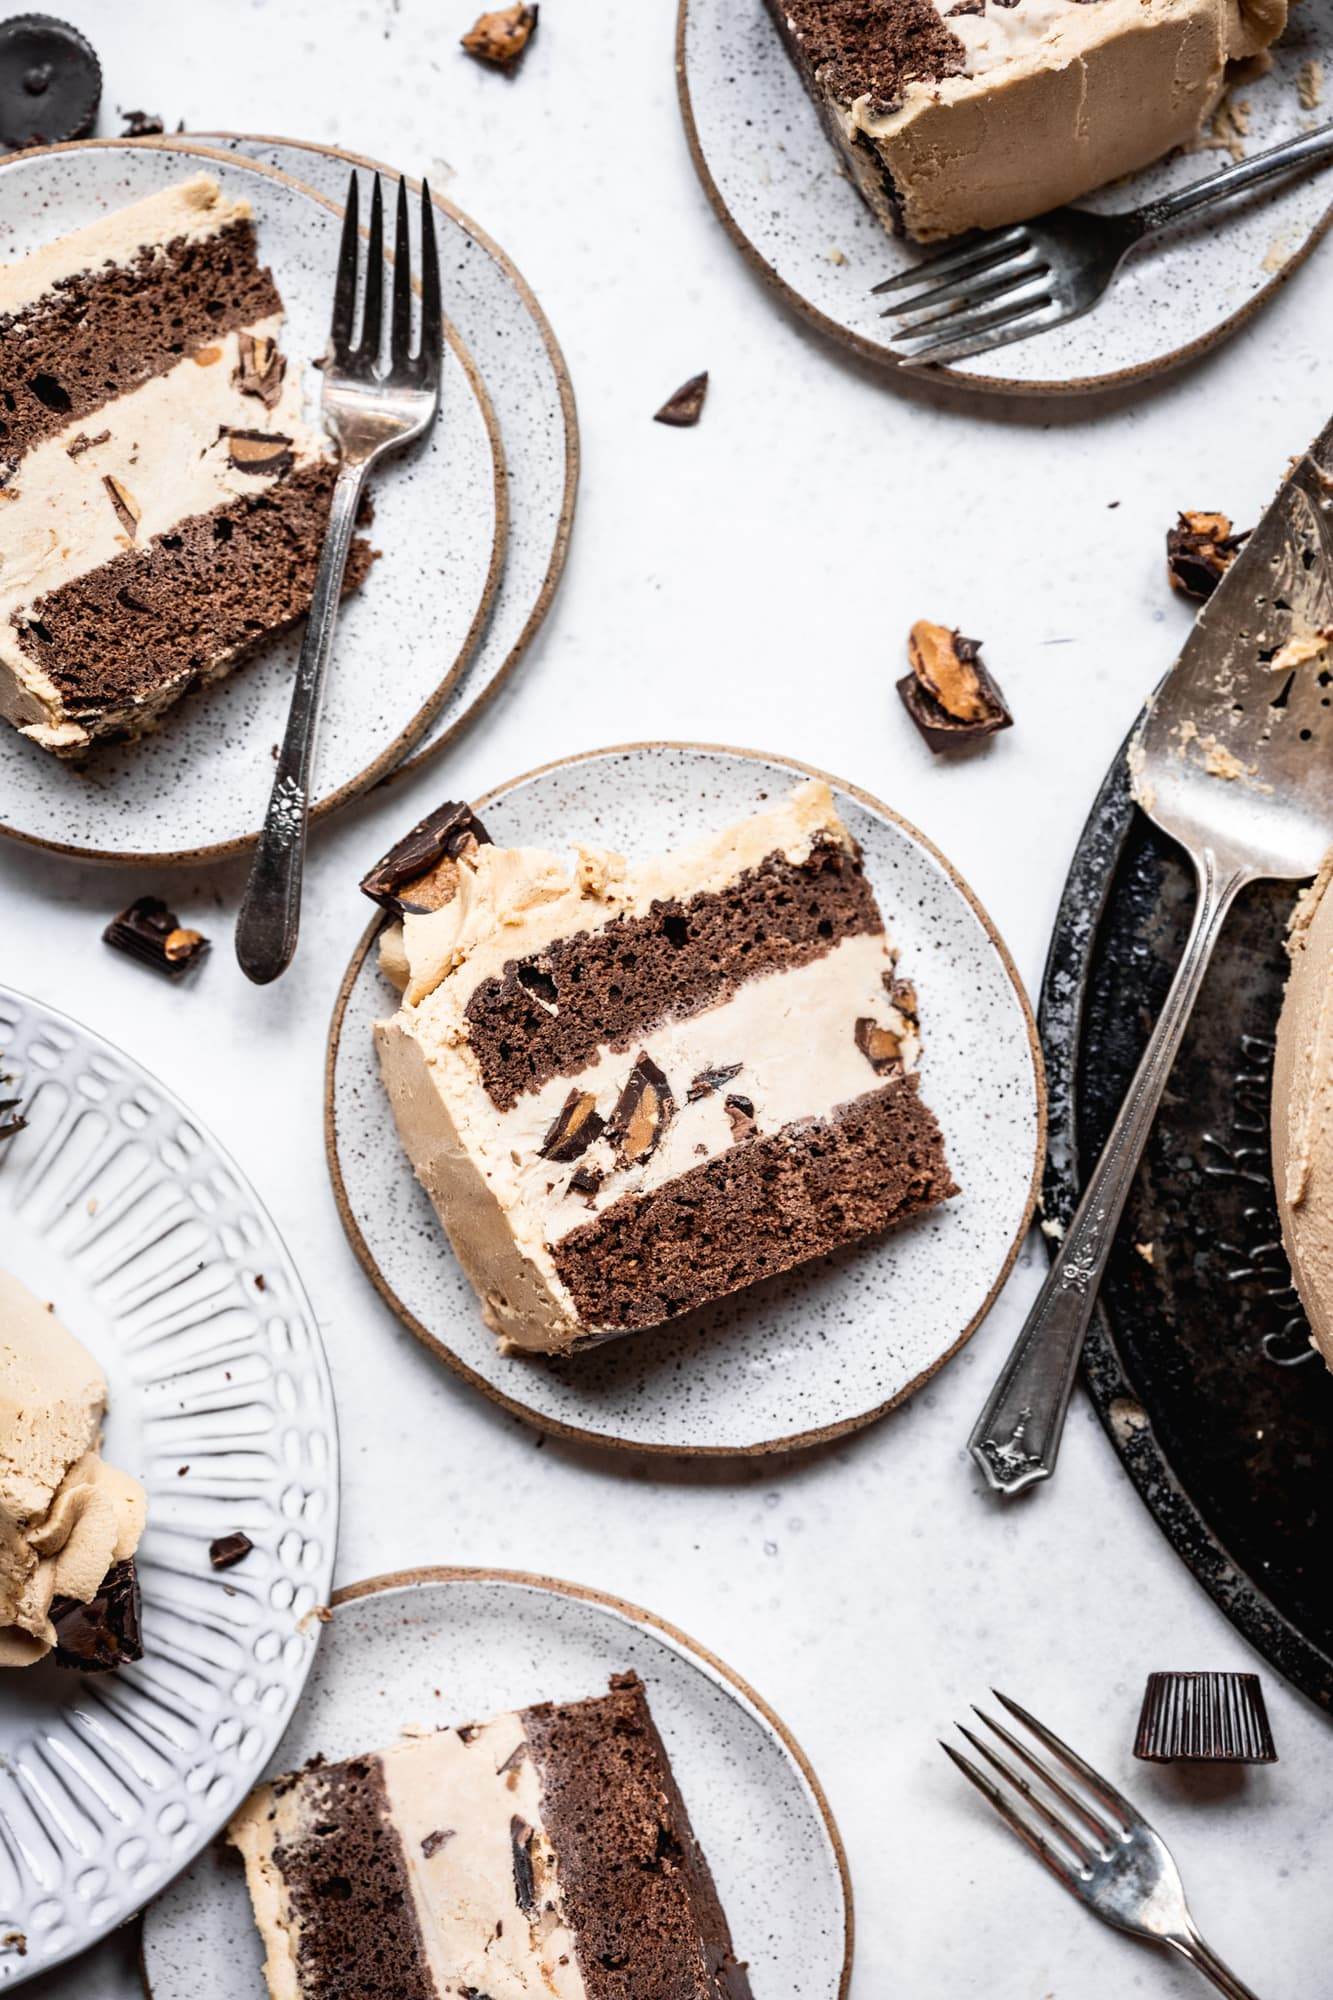 overhead view of chocolate peanut butter ice cream cake slices on white plates